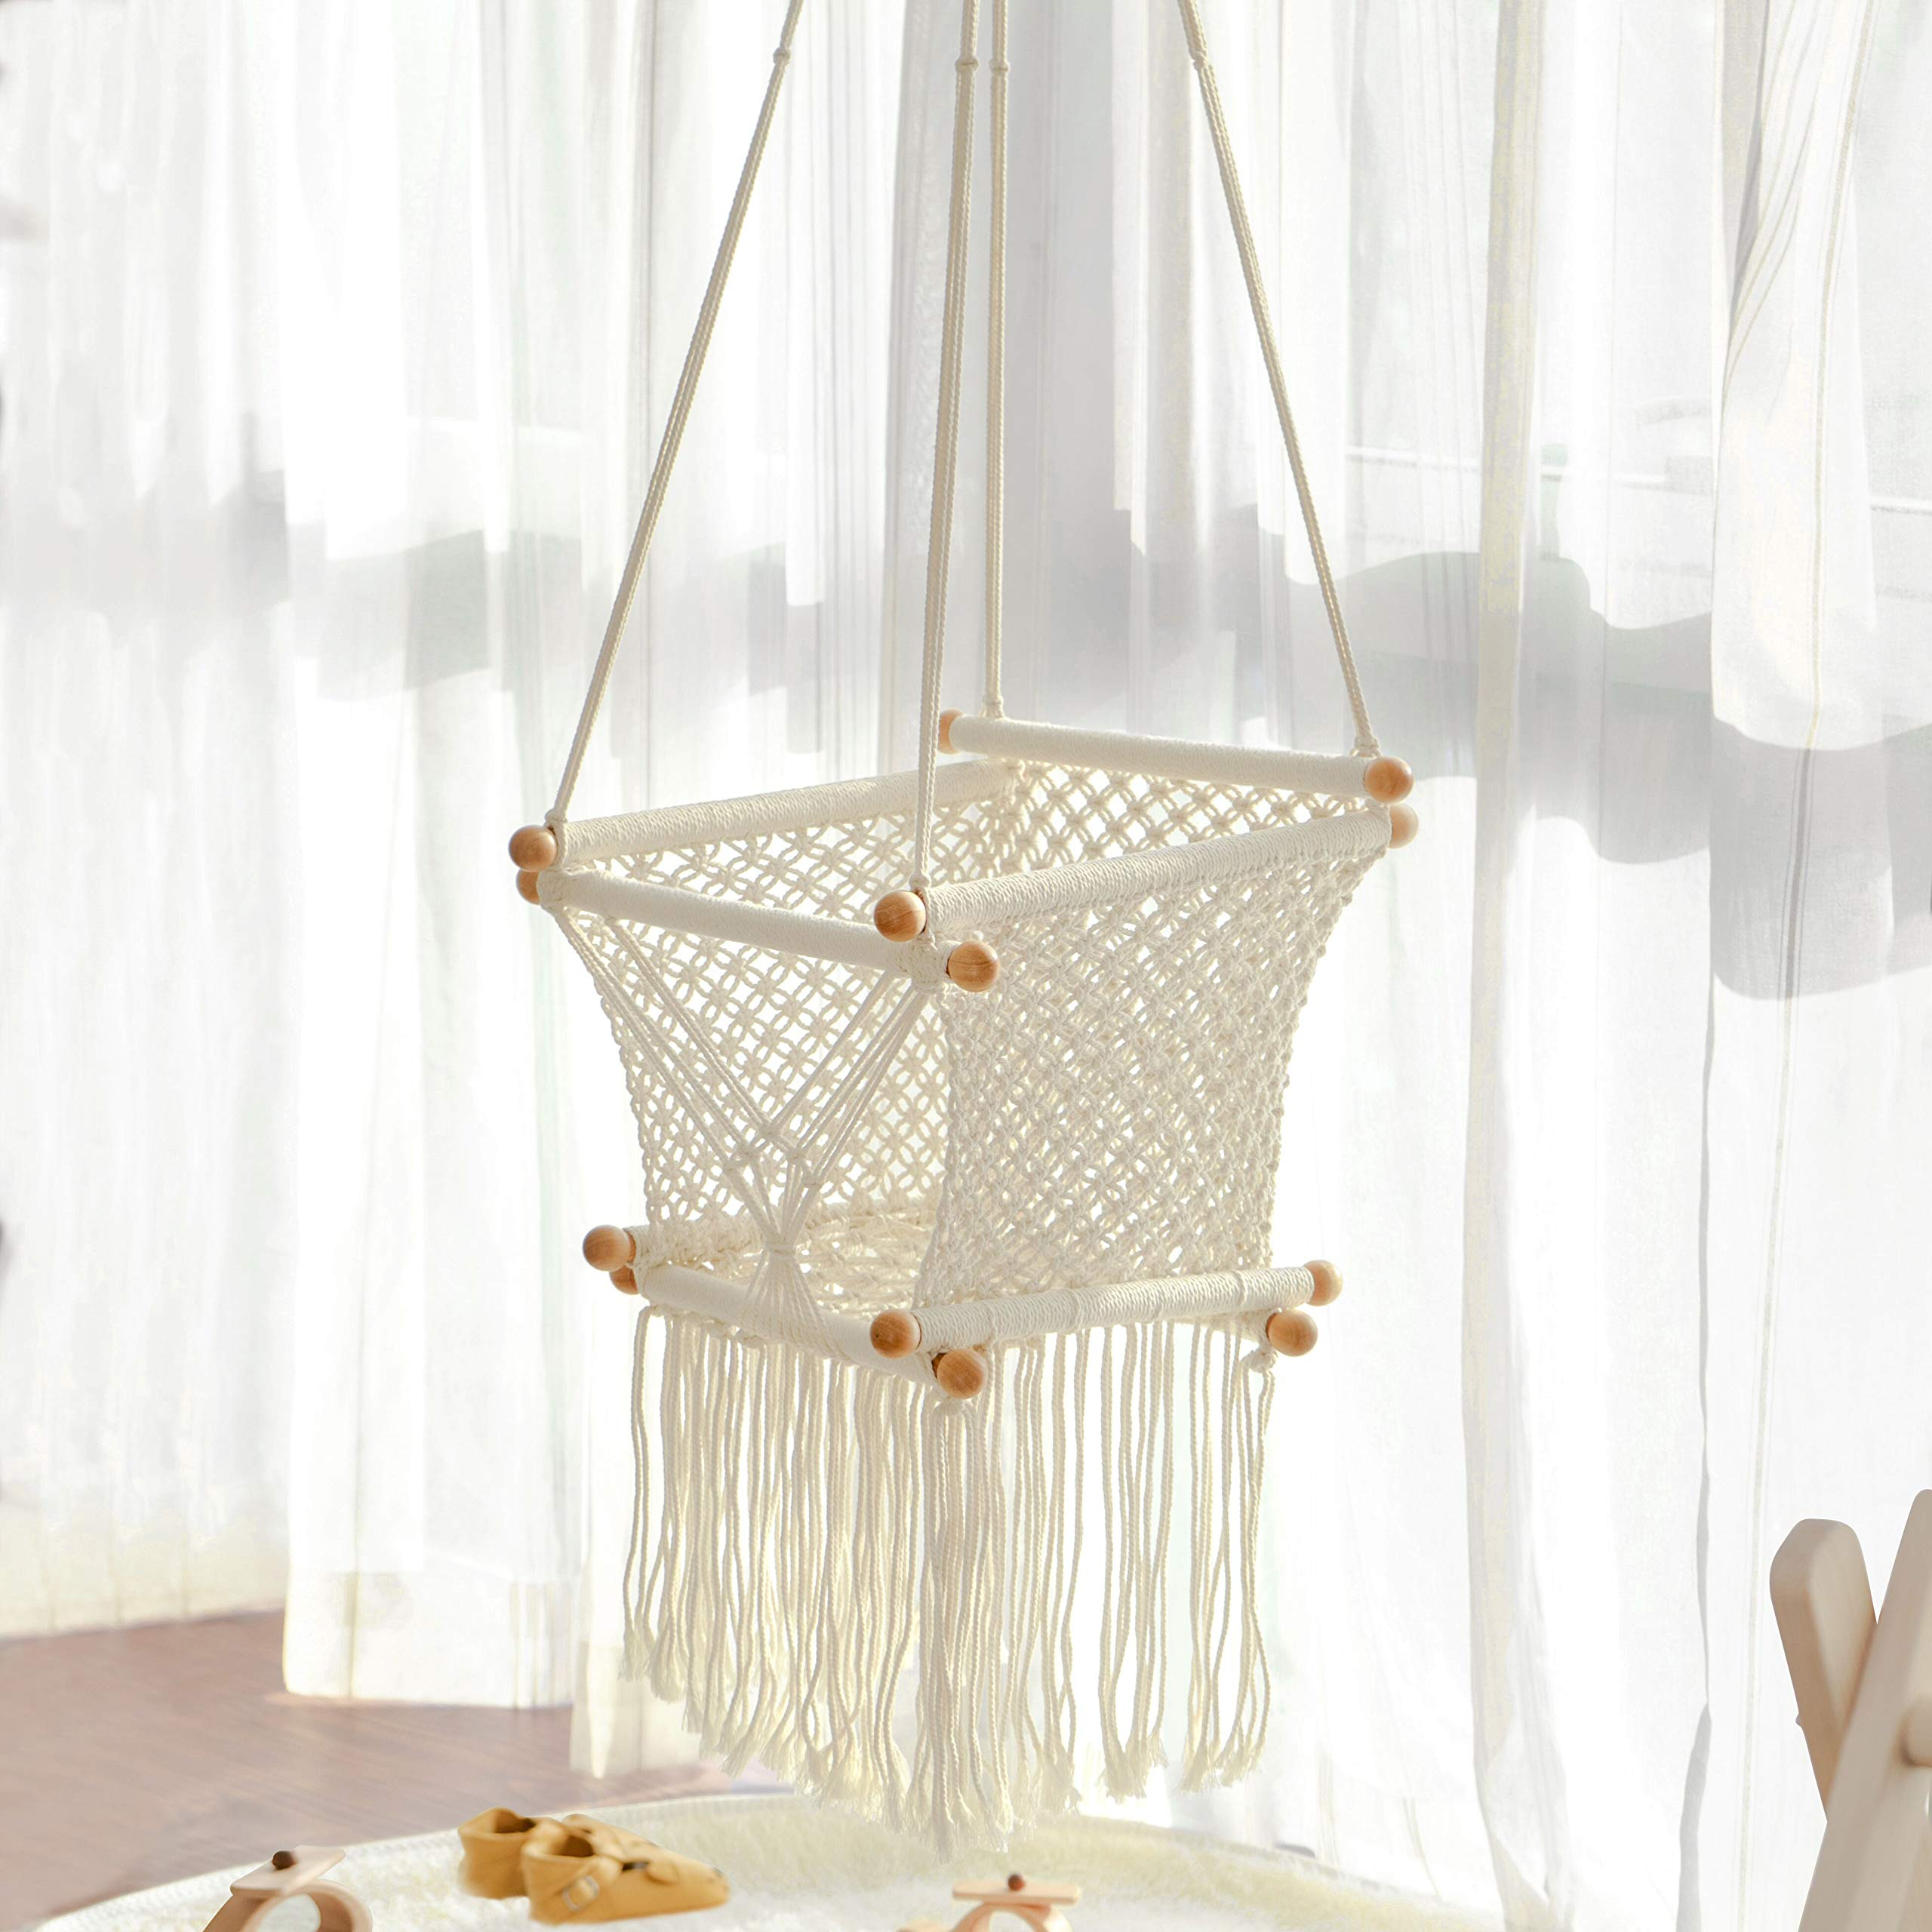 FUNNY SUPPLY Hanging Swing Seat Hammock Chair for Infant to Toddler Beige Color Cotton Rope Weaved Children's Indoor Playroom Nursery Decor Girl Birthday Gift by FUNNY SUPPLY